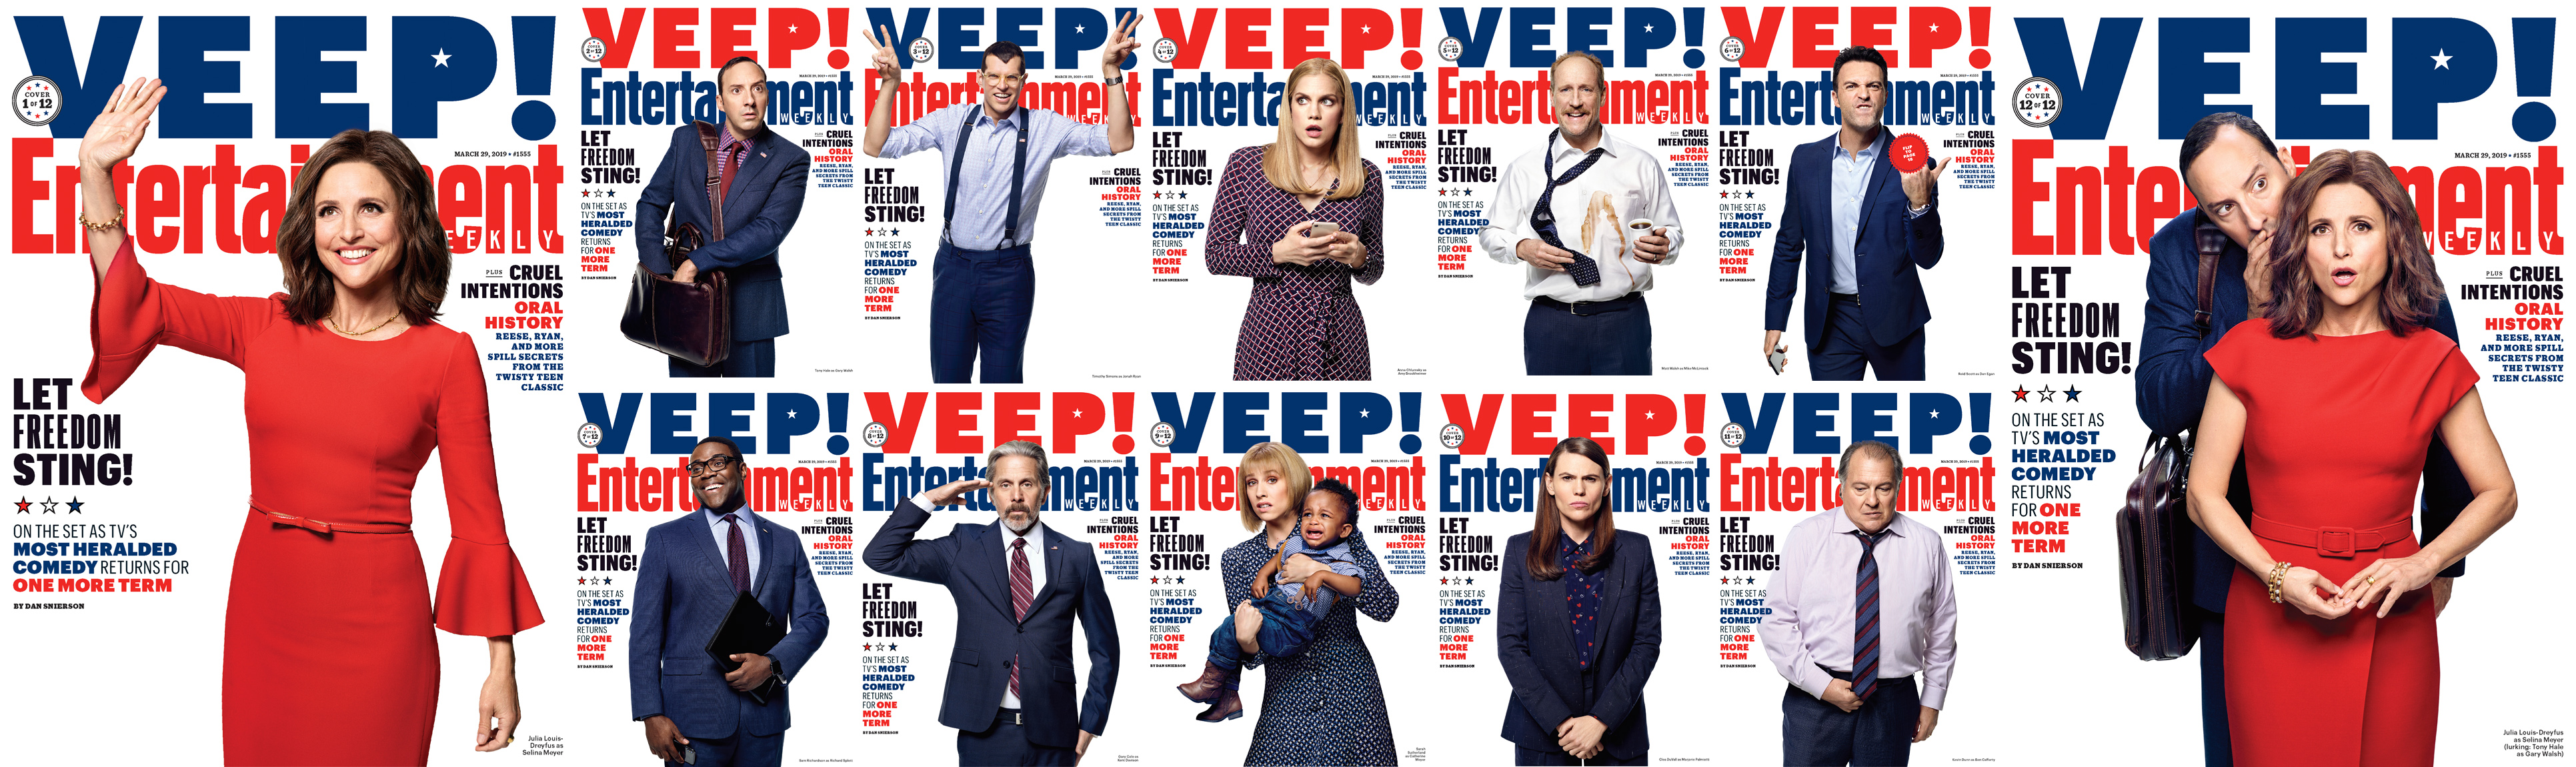 VEEPEWCOVERS